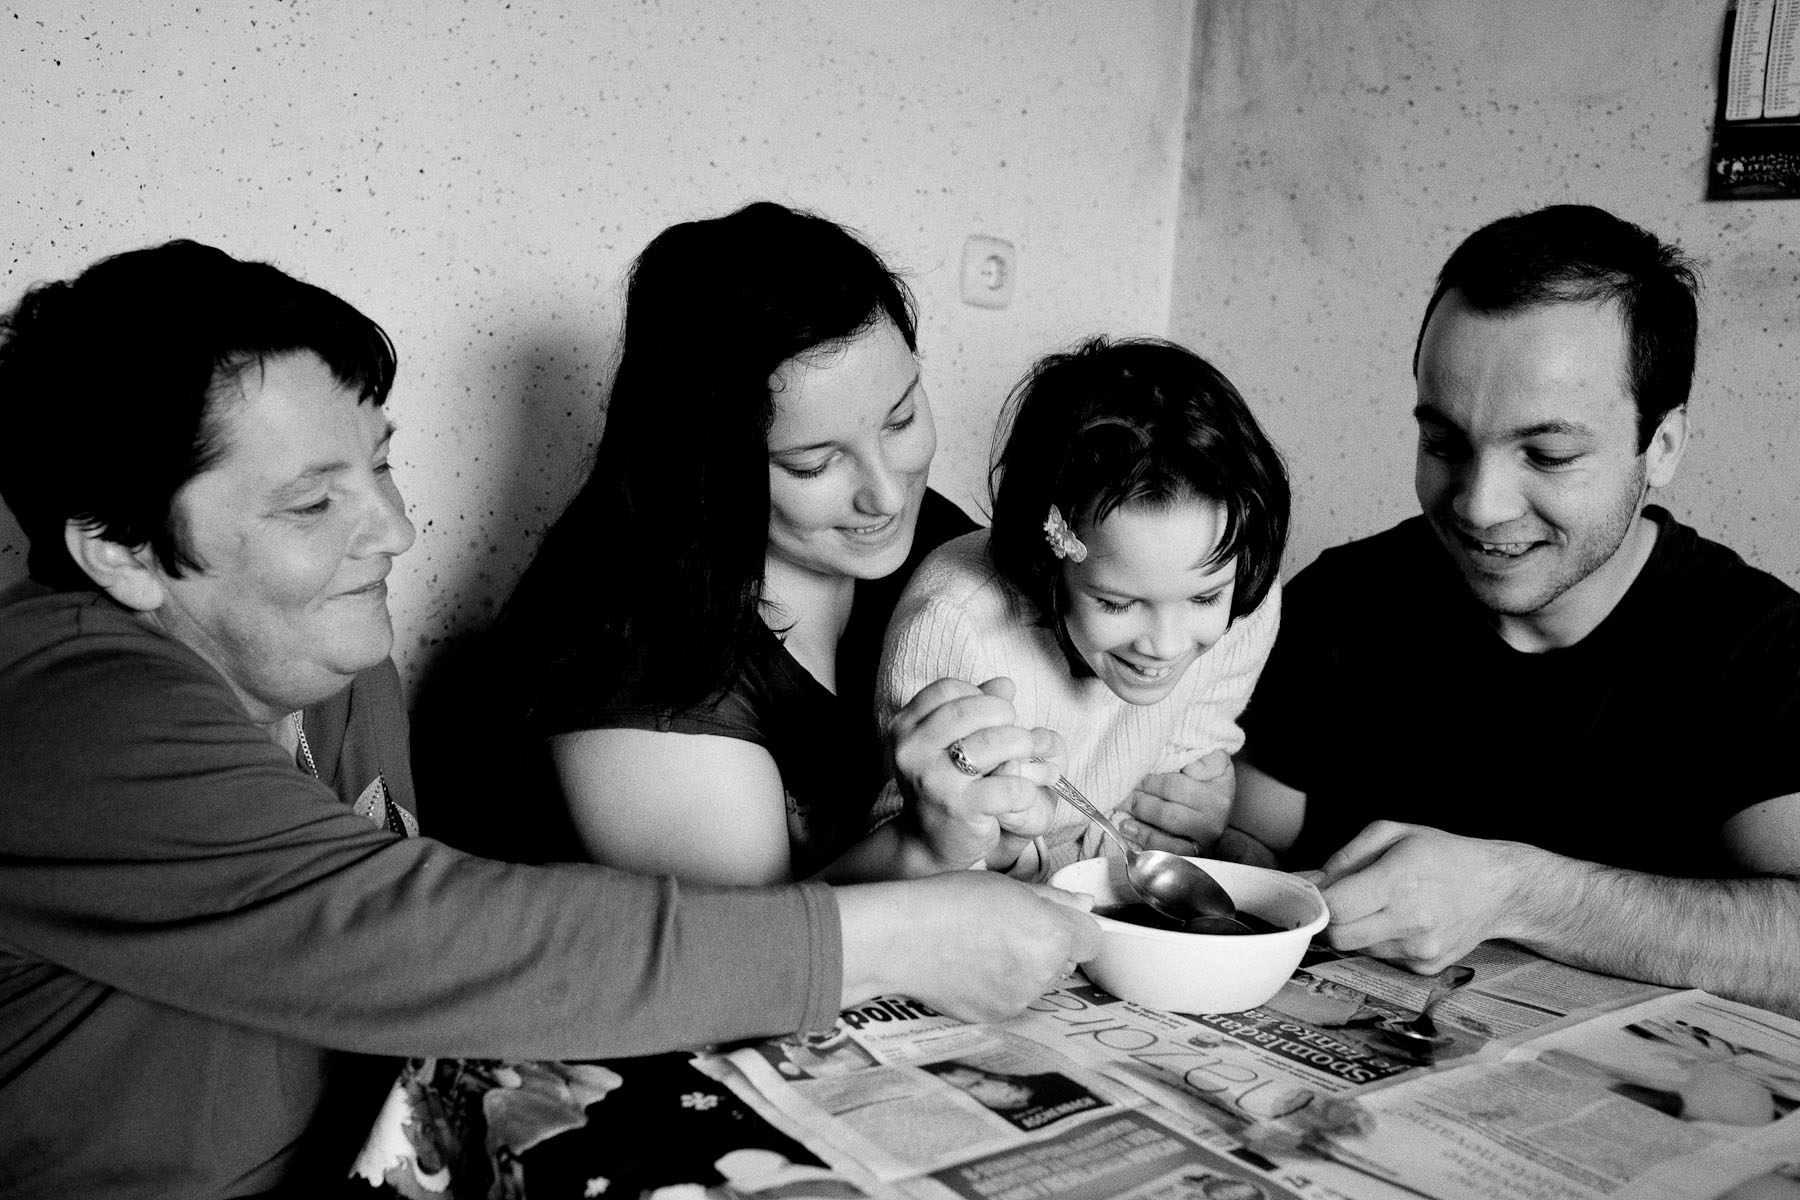 Barbara's mother Bozena, her sister Petra and brother Andrej help Barbara paint easter eggs during easter holidays in their home in Zavrc, Slovenia, April 7, 2012.